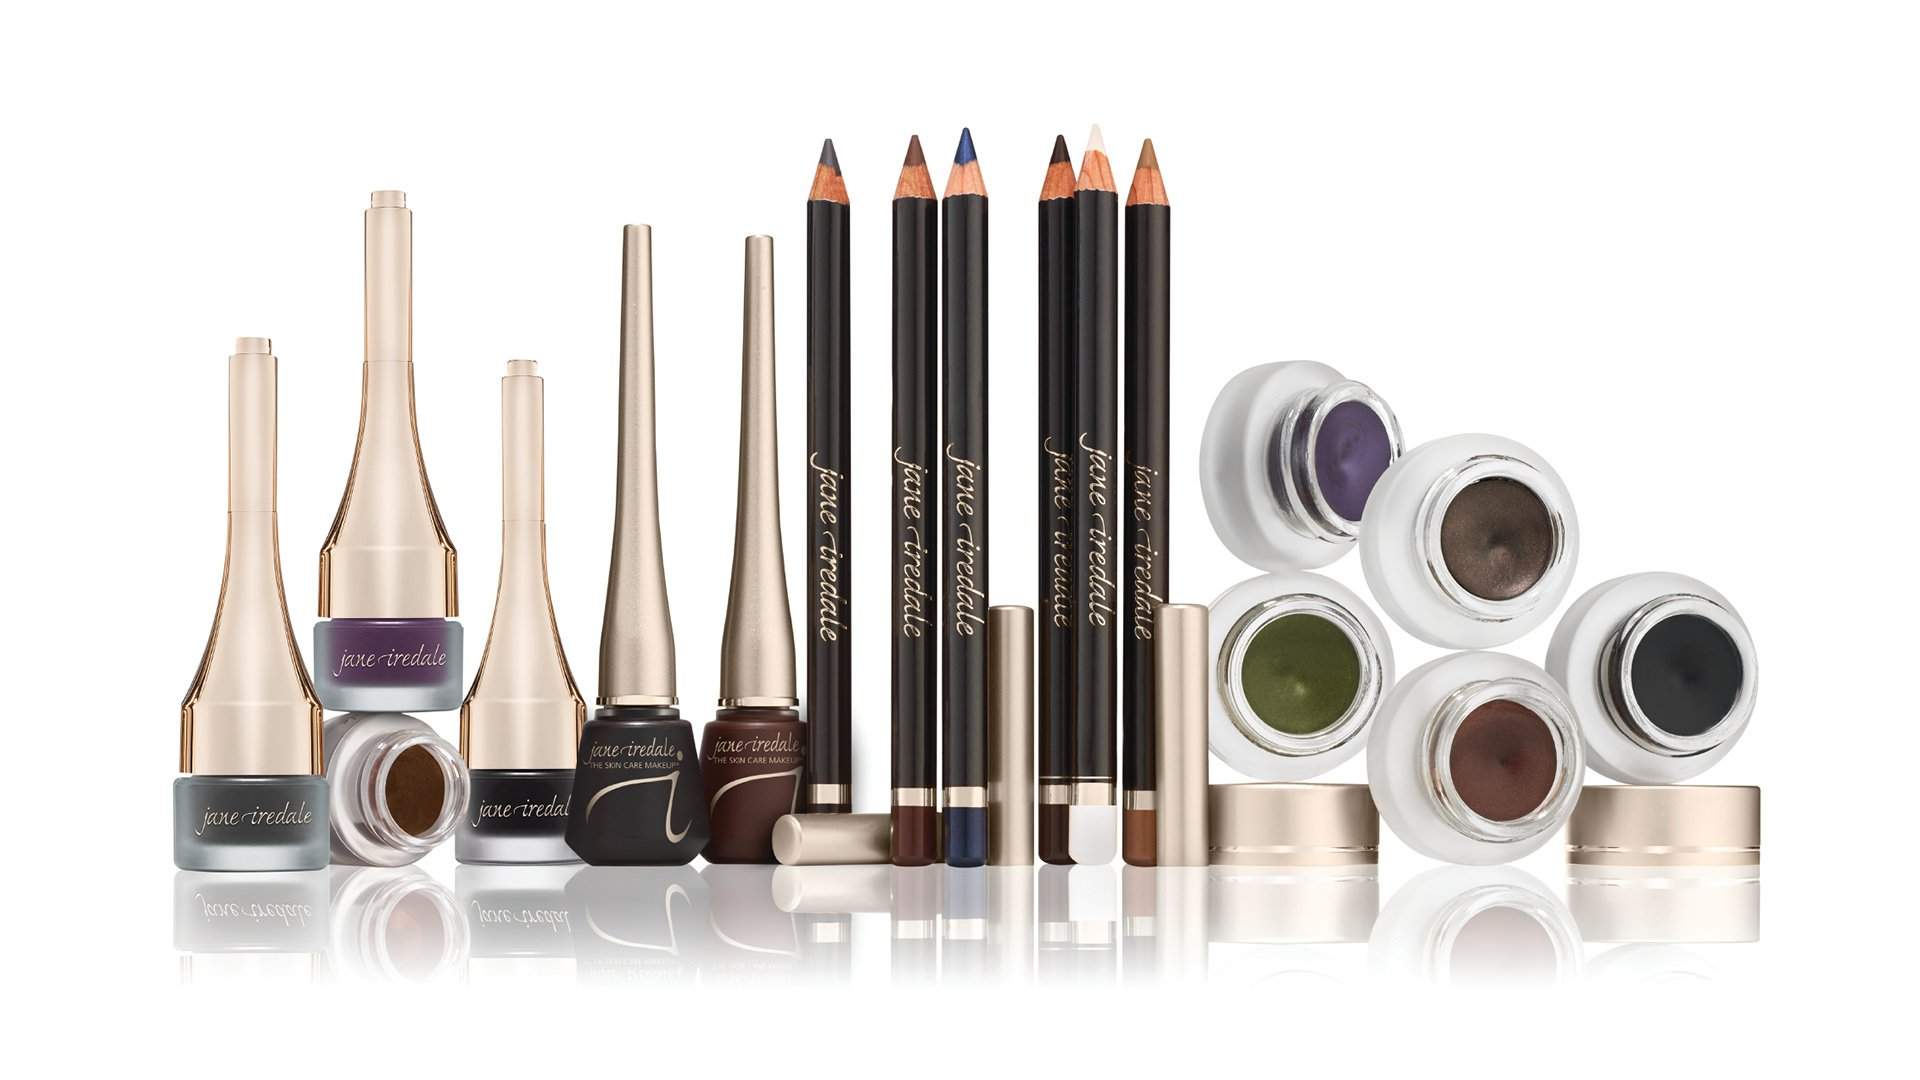 jane iredale mascara eye shadows liquid eye sheres